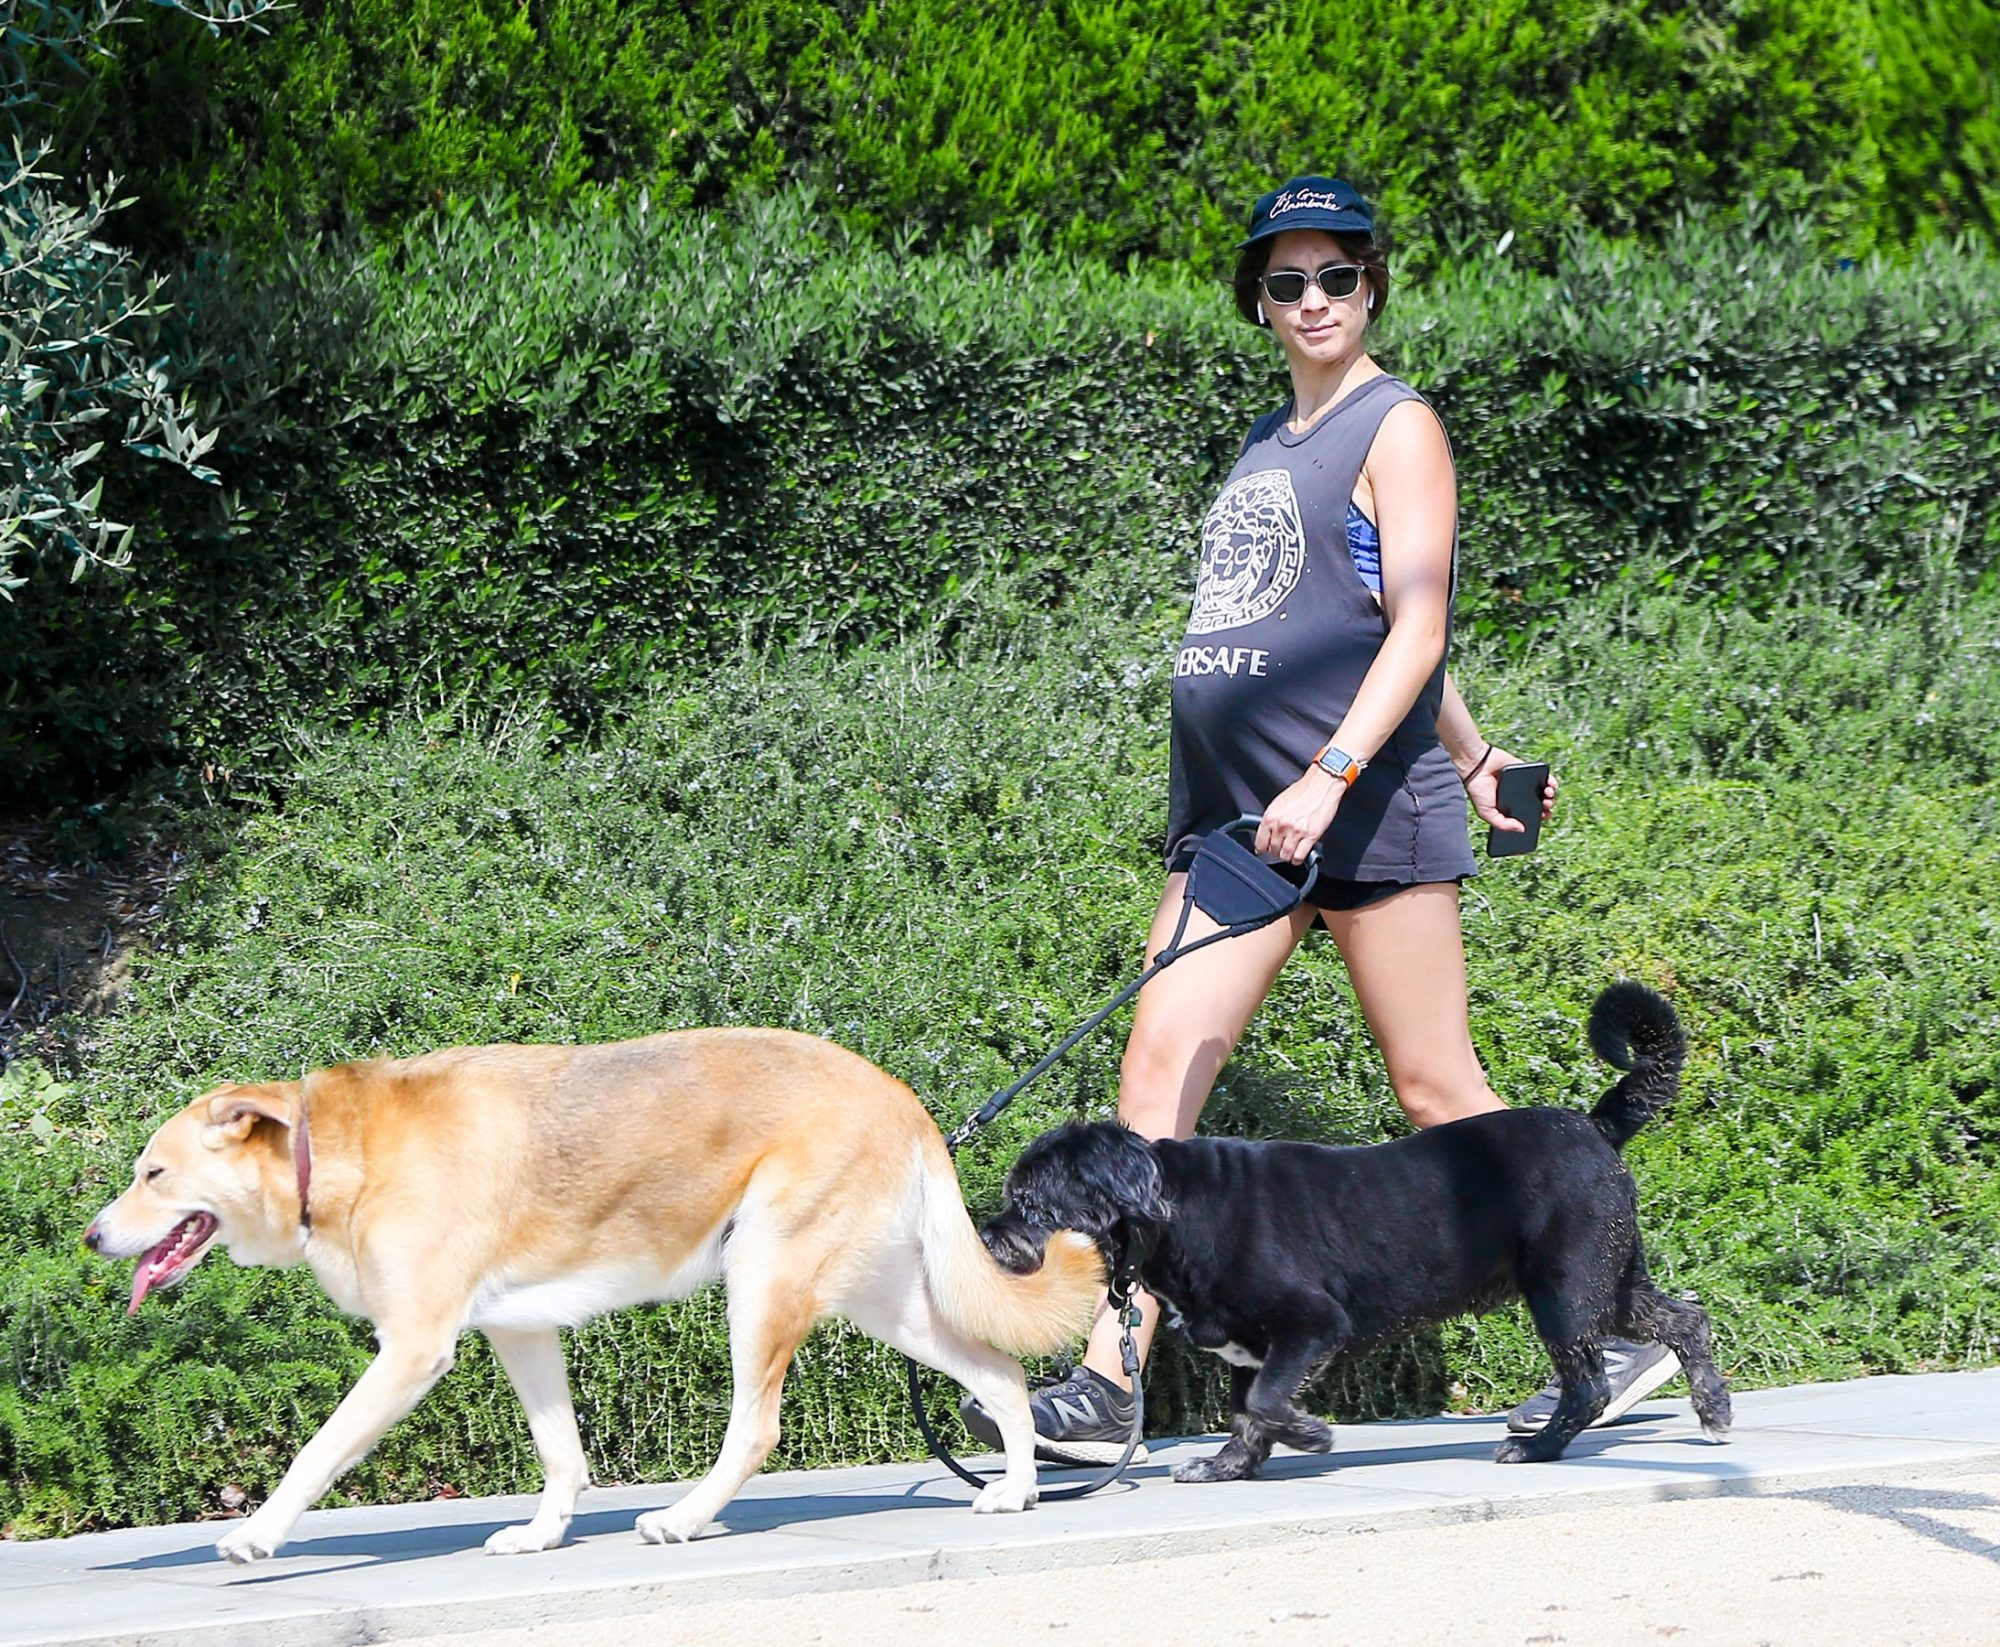 EXCLUSIVE: Pregnant Troian Bellisario showing off her baby bump as she goes for a walk with her two dogs